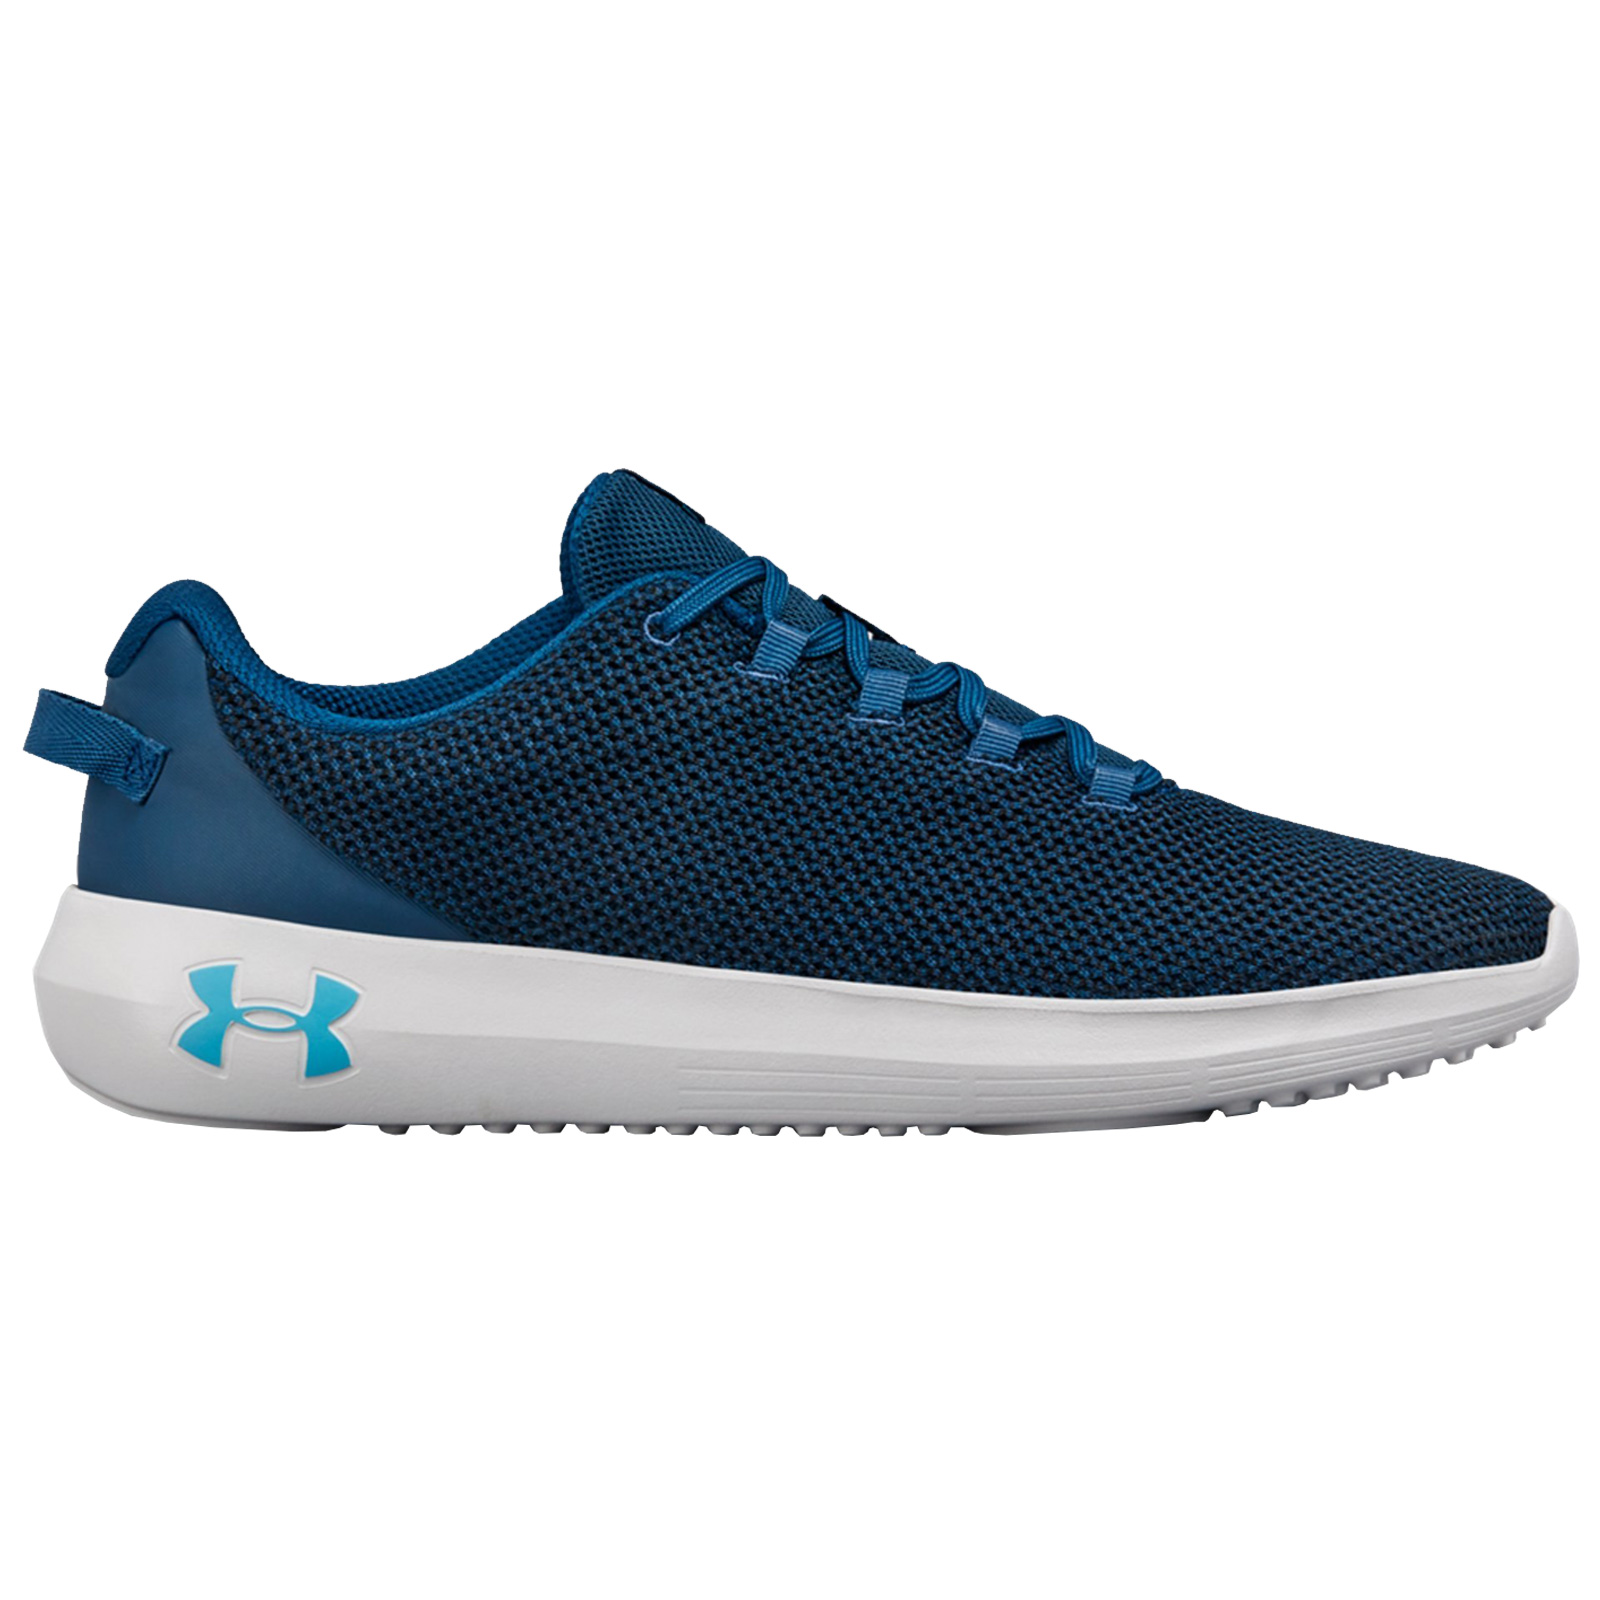 UA Running Shoes Training Gym Exercise 2019 Under Armour Mens Ripple Trainers